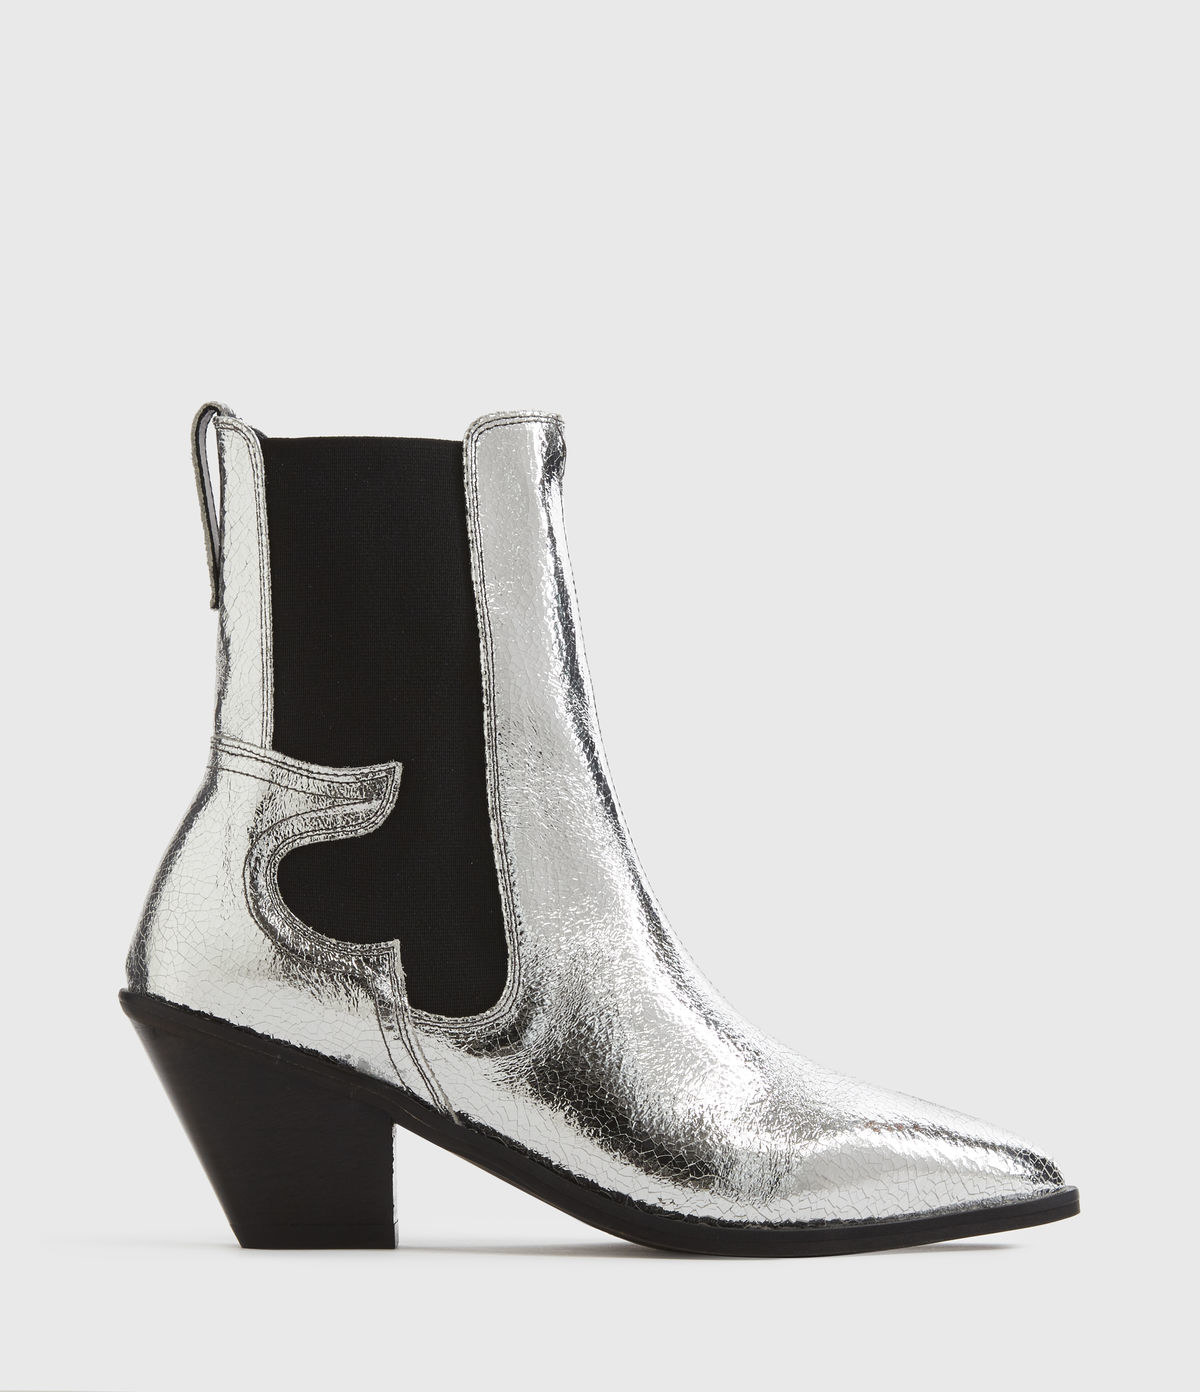 side profile of metallic silver and black cowboy style ankle boot